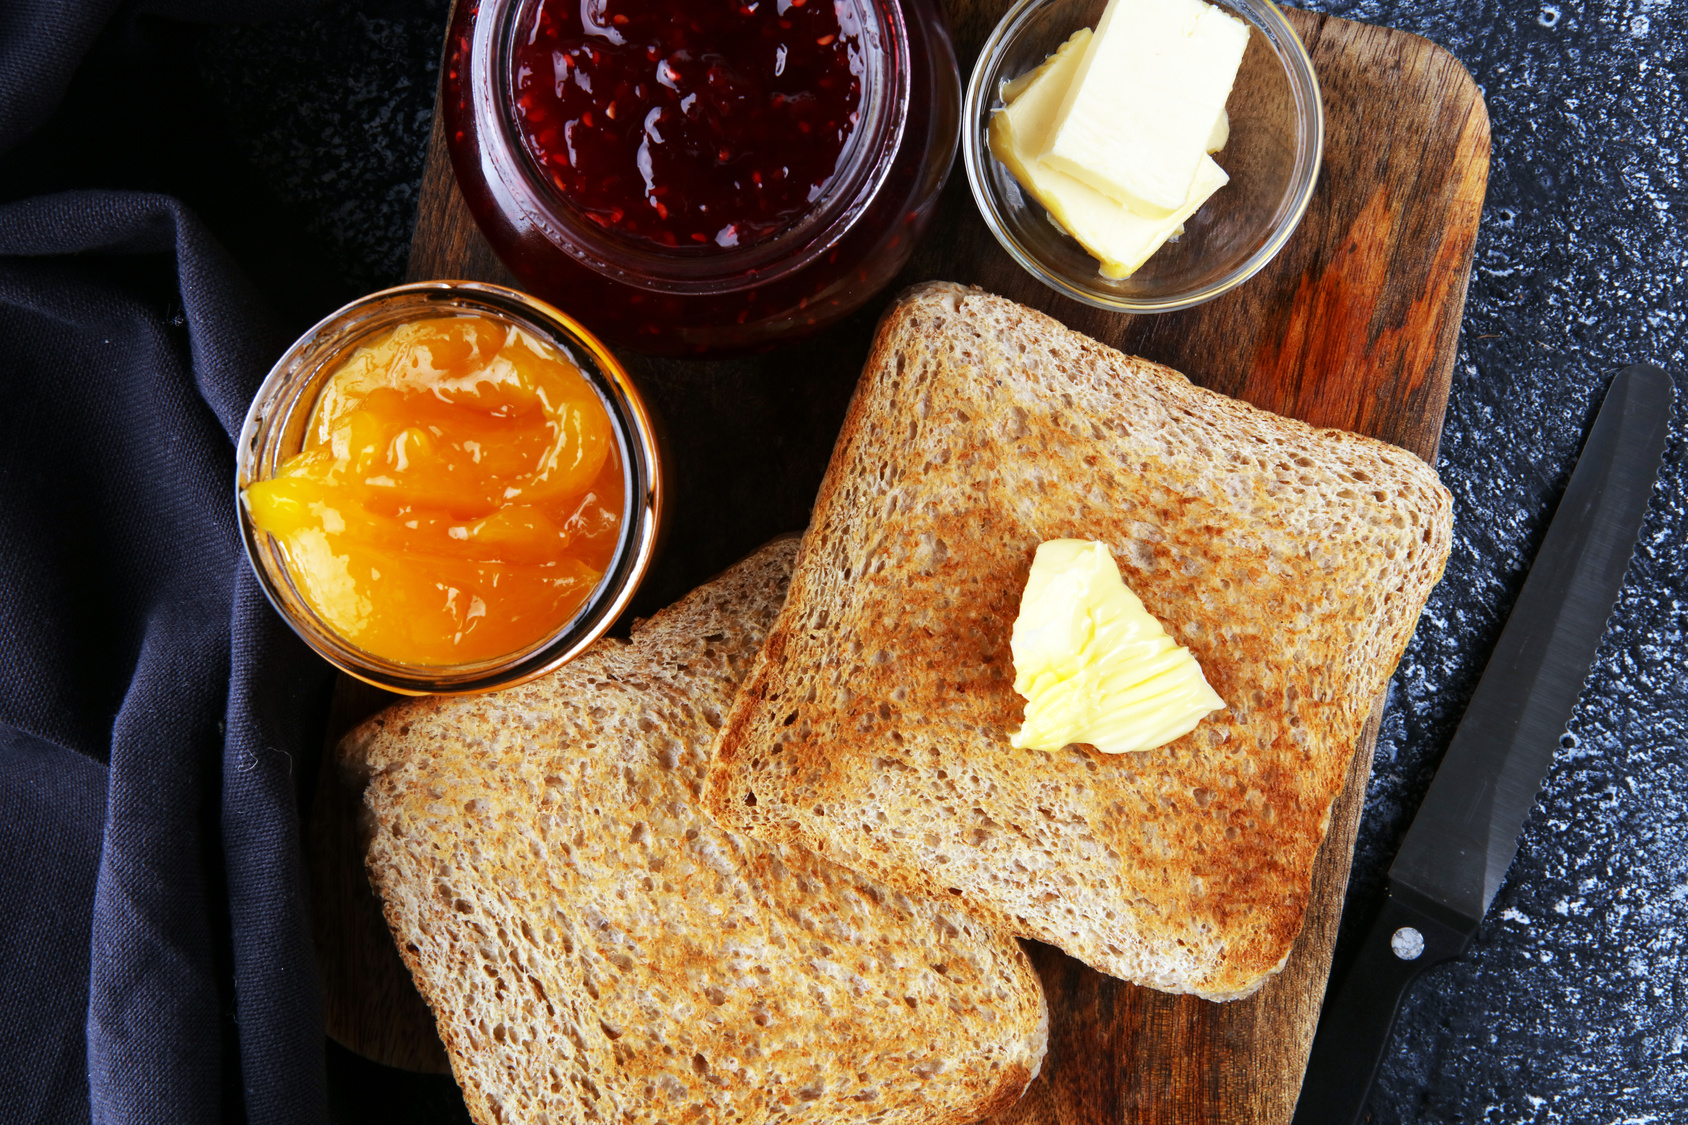 Toast bread with homemade strawberry jam and orange marmalade on rustic table served with butter for breakfast or brunch.